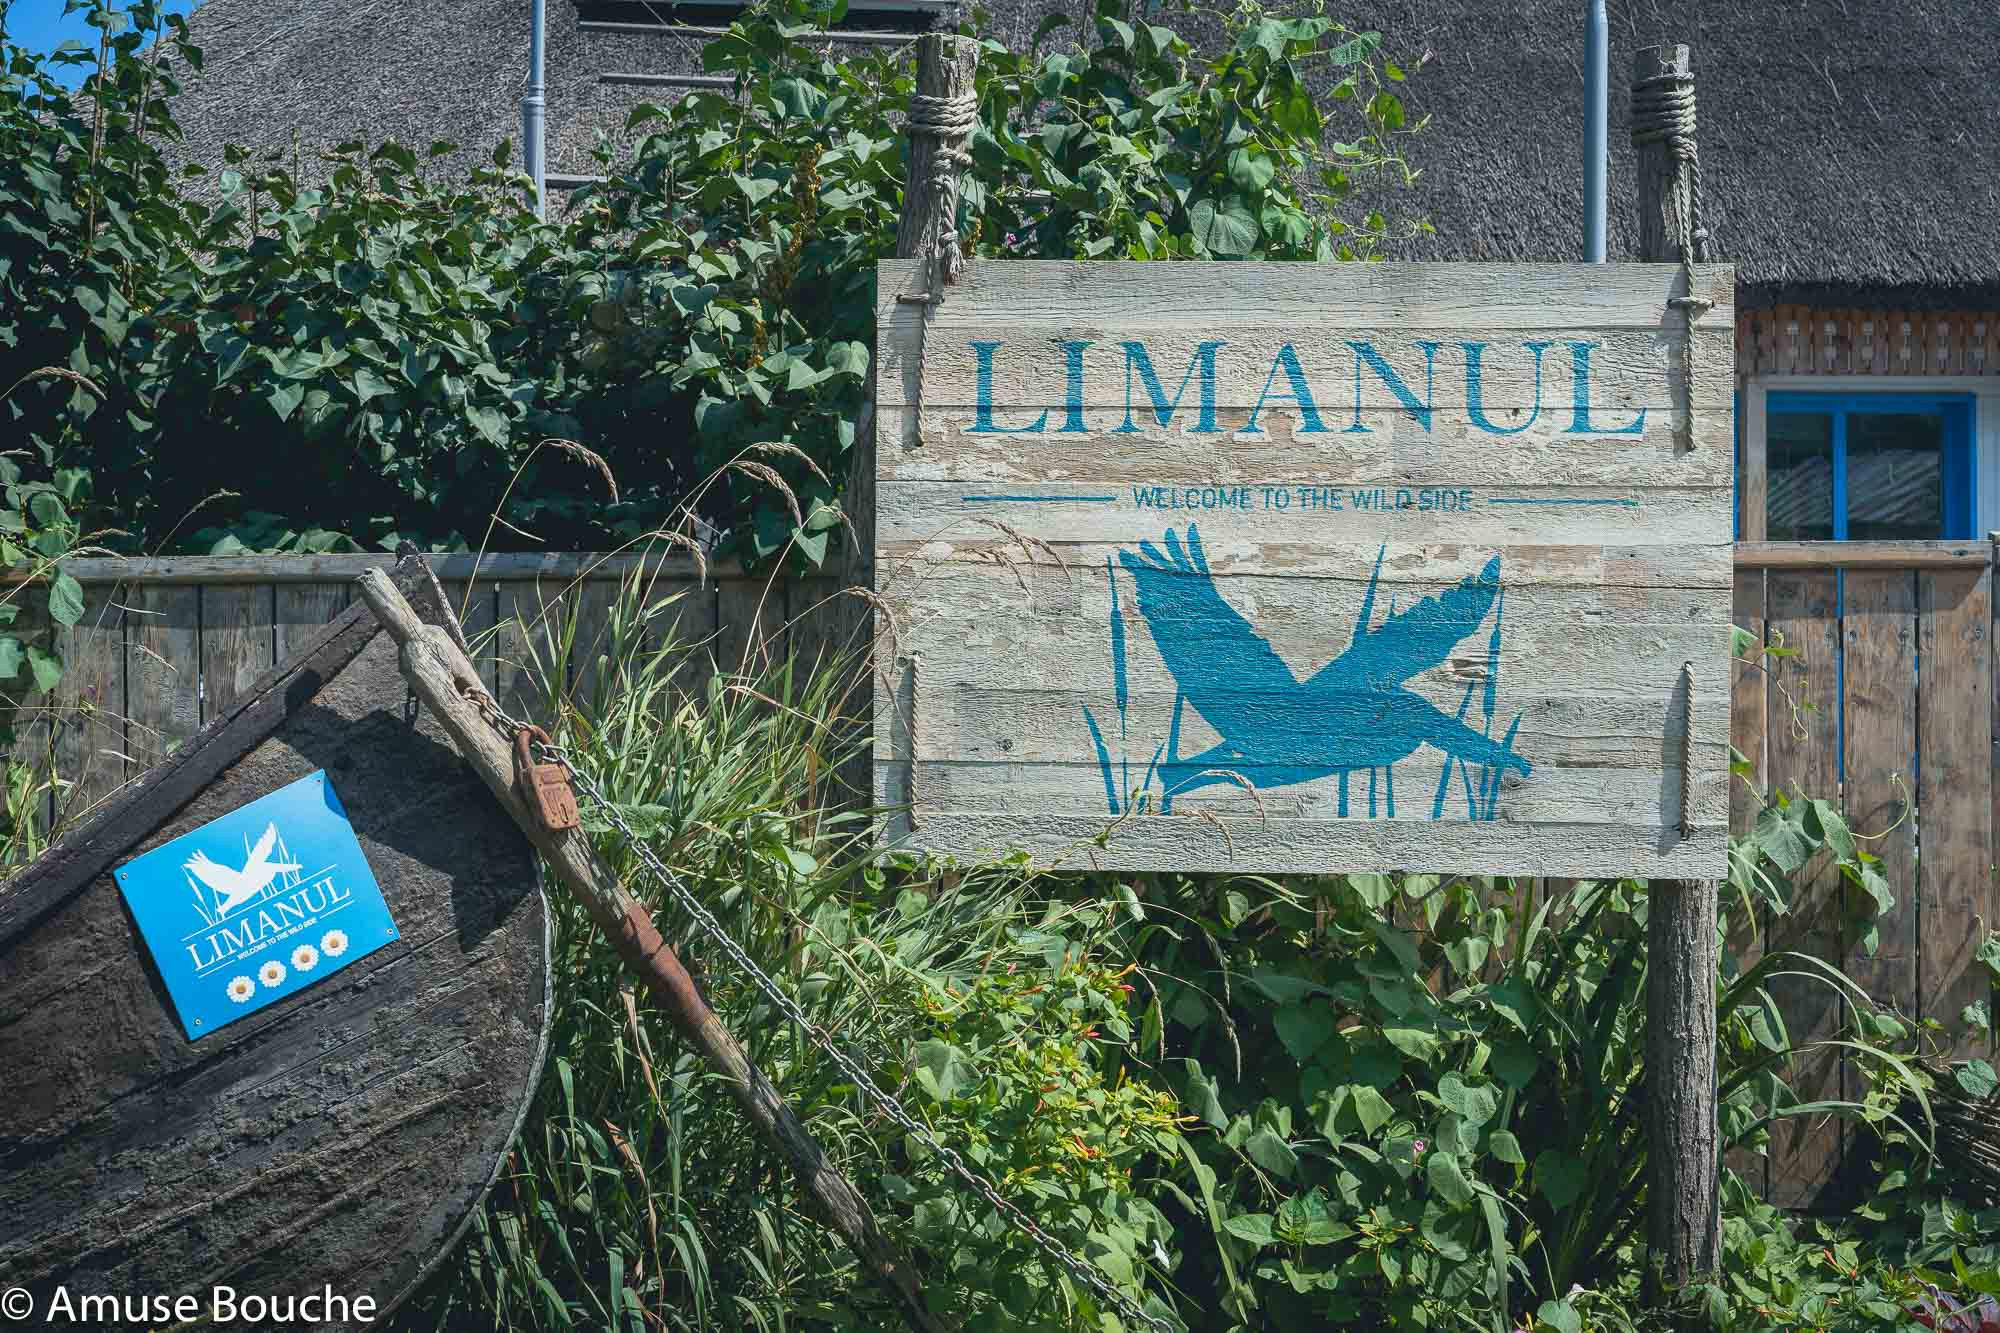 Limanul Resort entrance